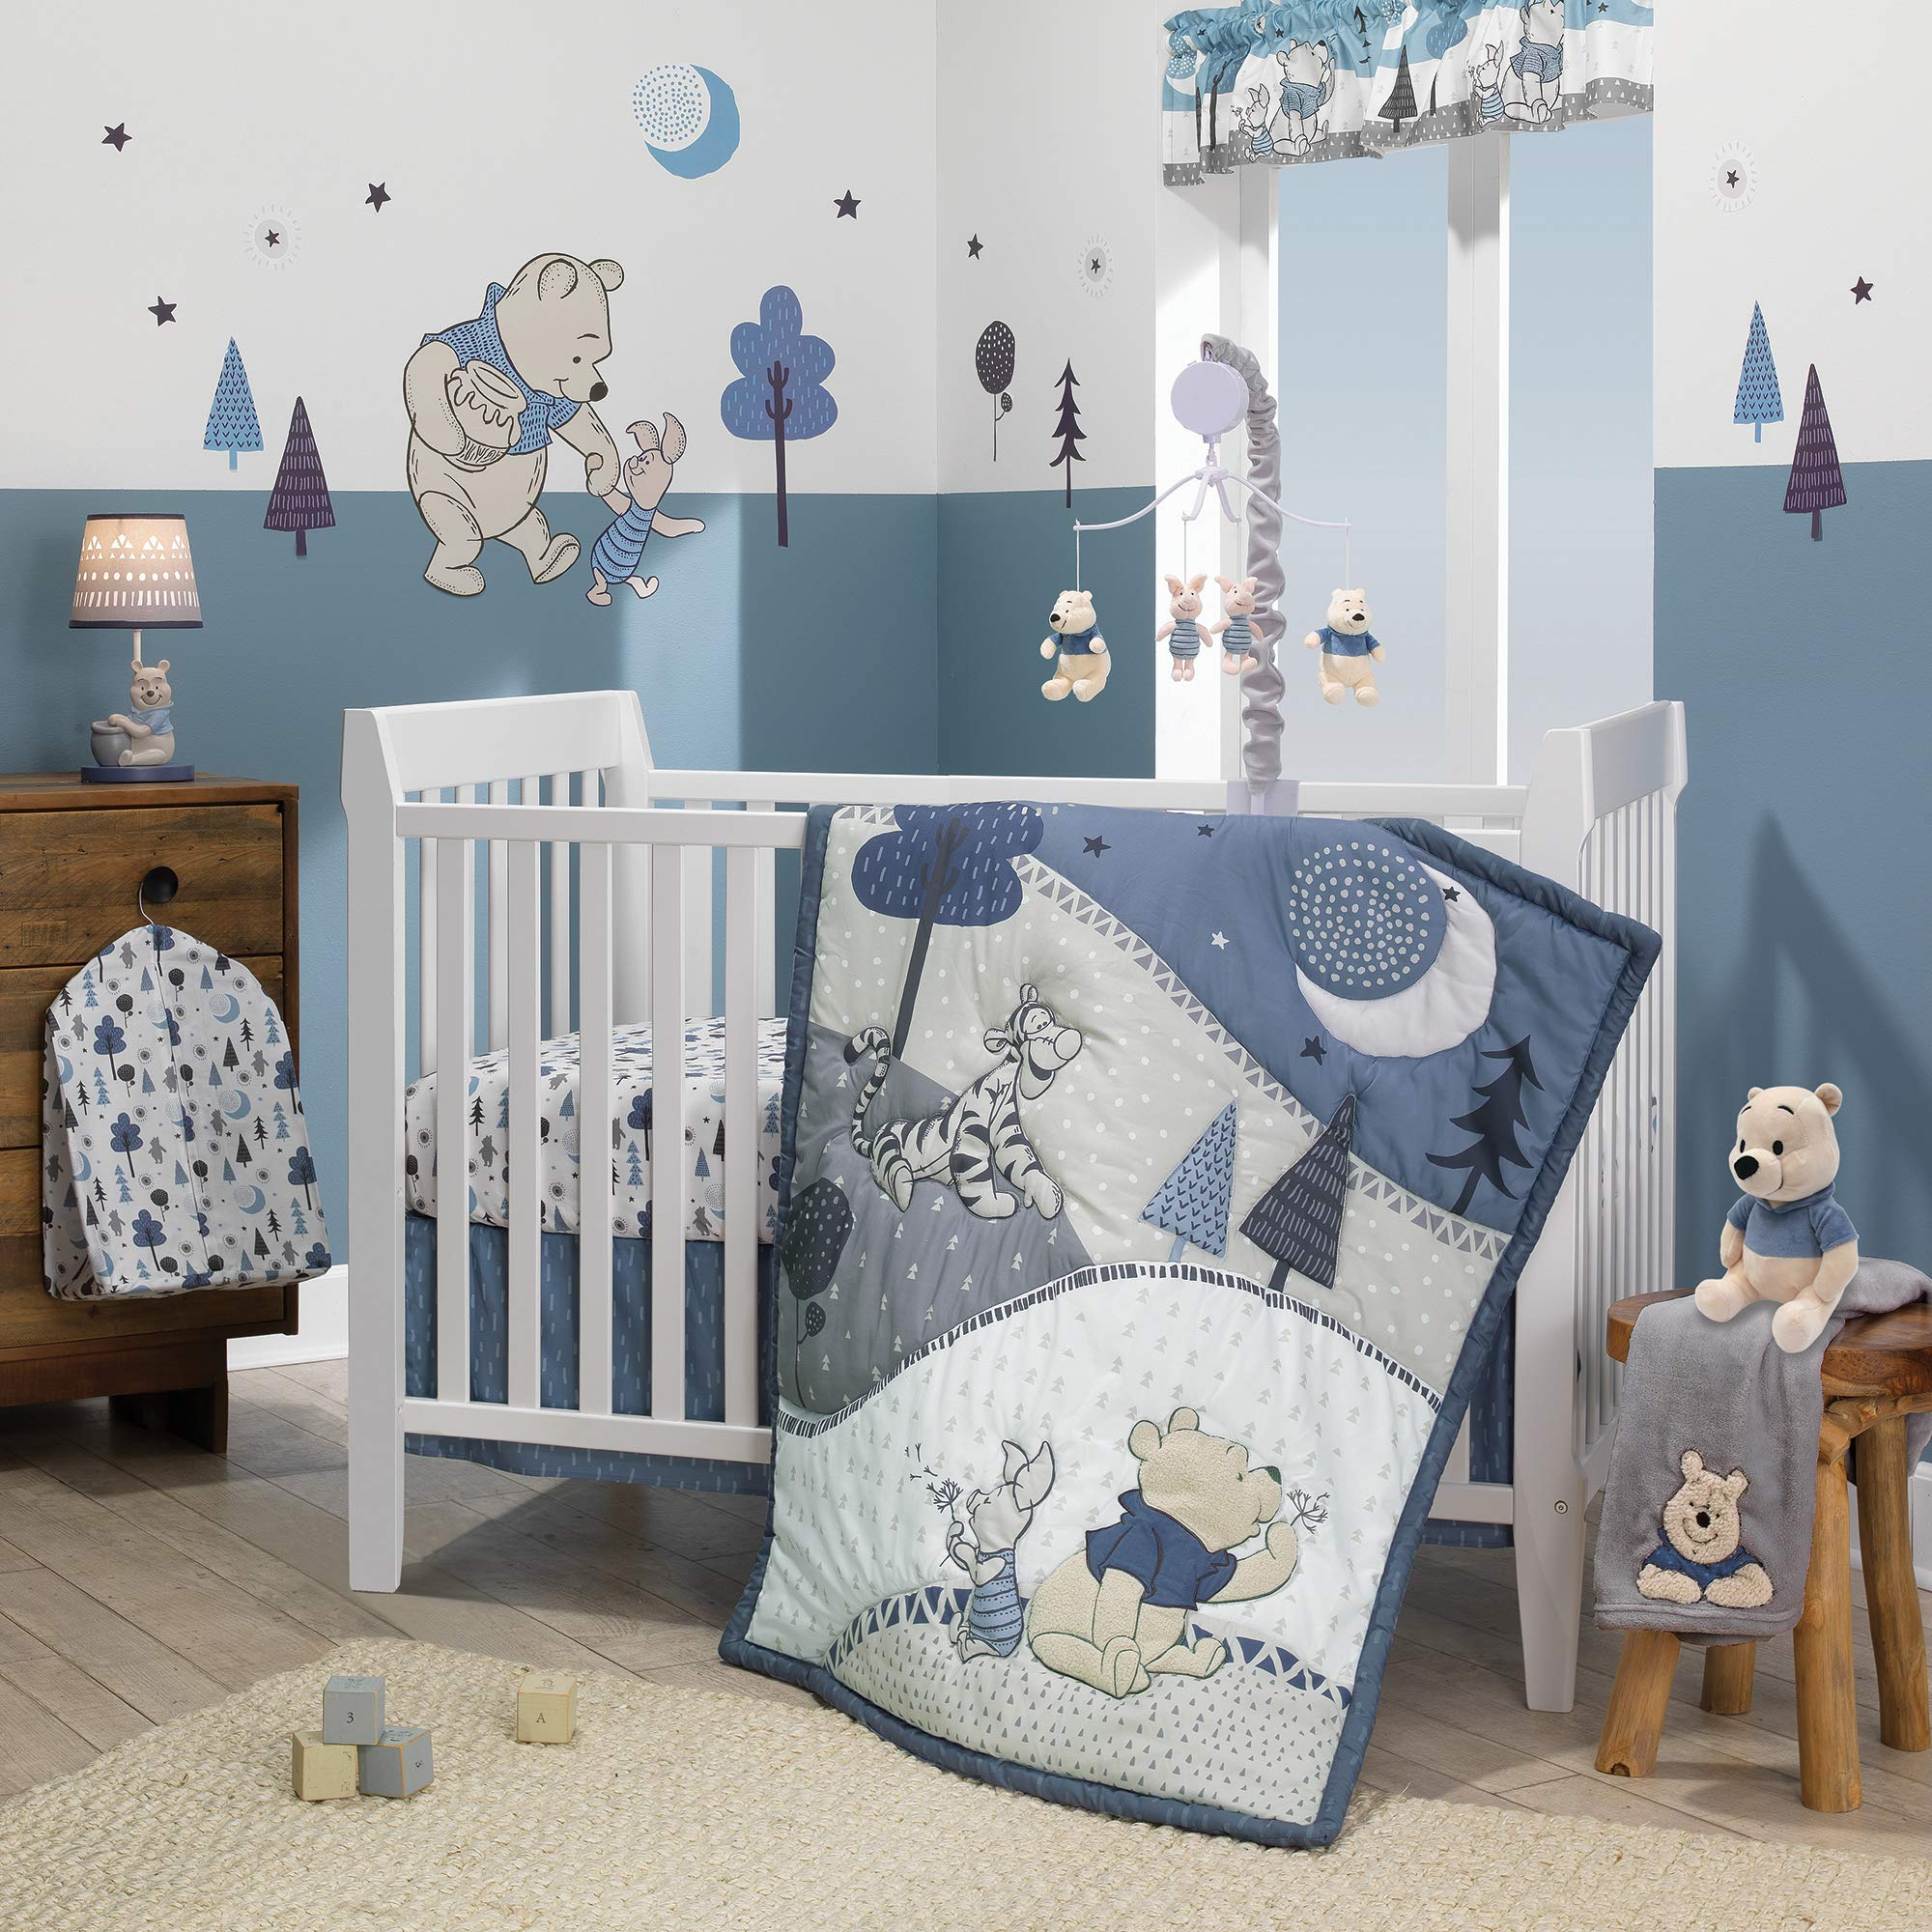 Lambs & Ivy Forever Pooh 3Piece Baby Crib Bedding Set, Blue by Lambs & Ivy (Image #1)